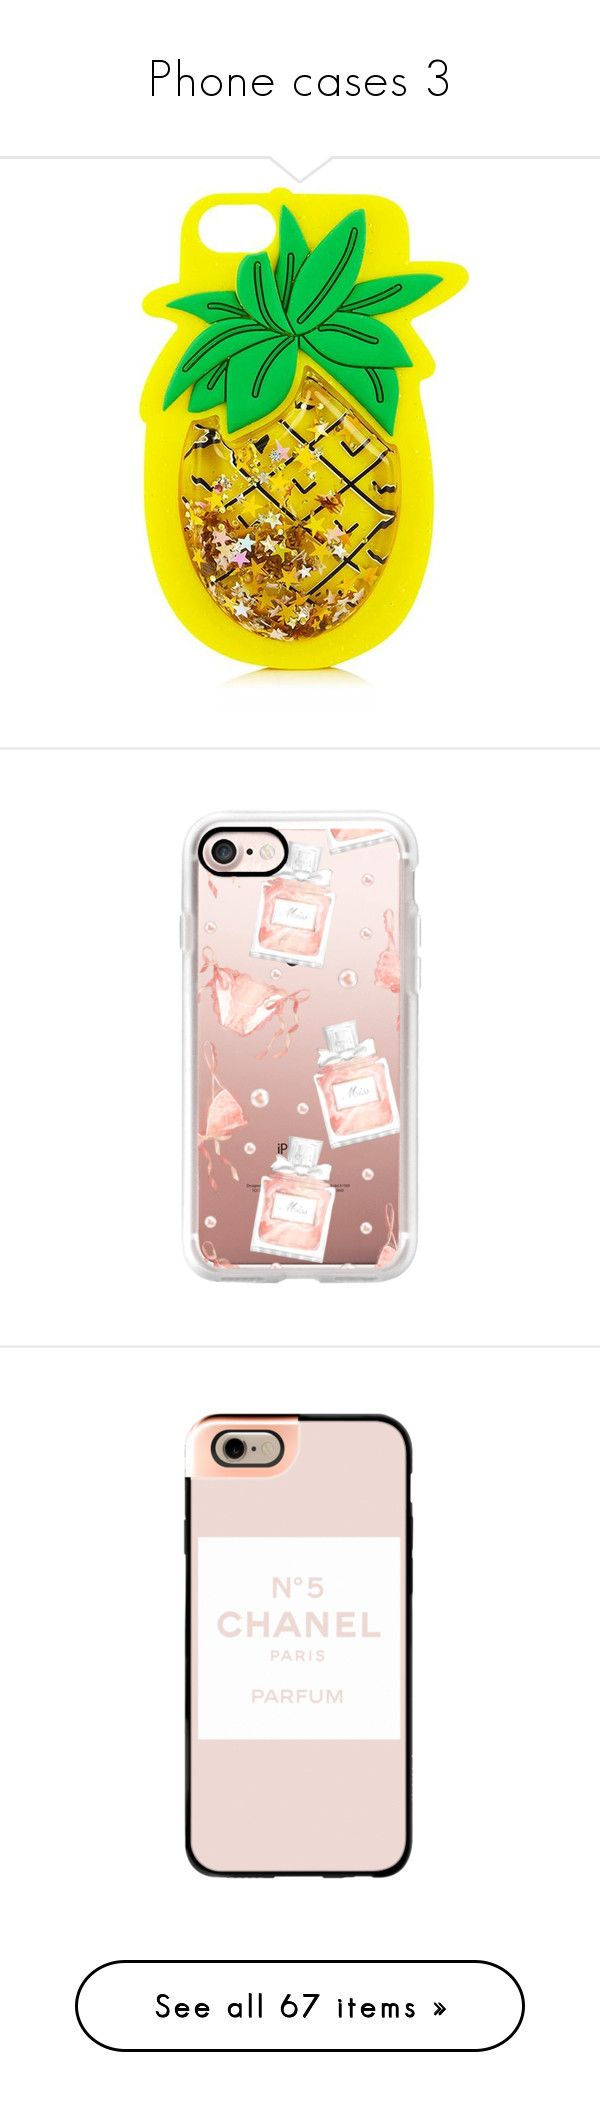 Medical research and corporate technology case mate iphone 4 case -  Phone Cases 3 By Austinsmango 96 Liked On Polyvore Featuring Accessories Tech Accessories Yellow Phone Iphone Case Rose Gold Iphone Case Iphone